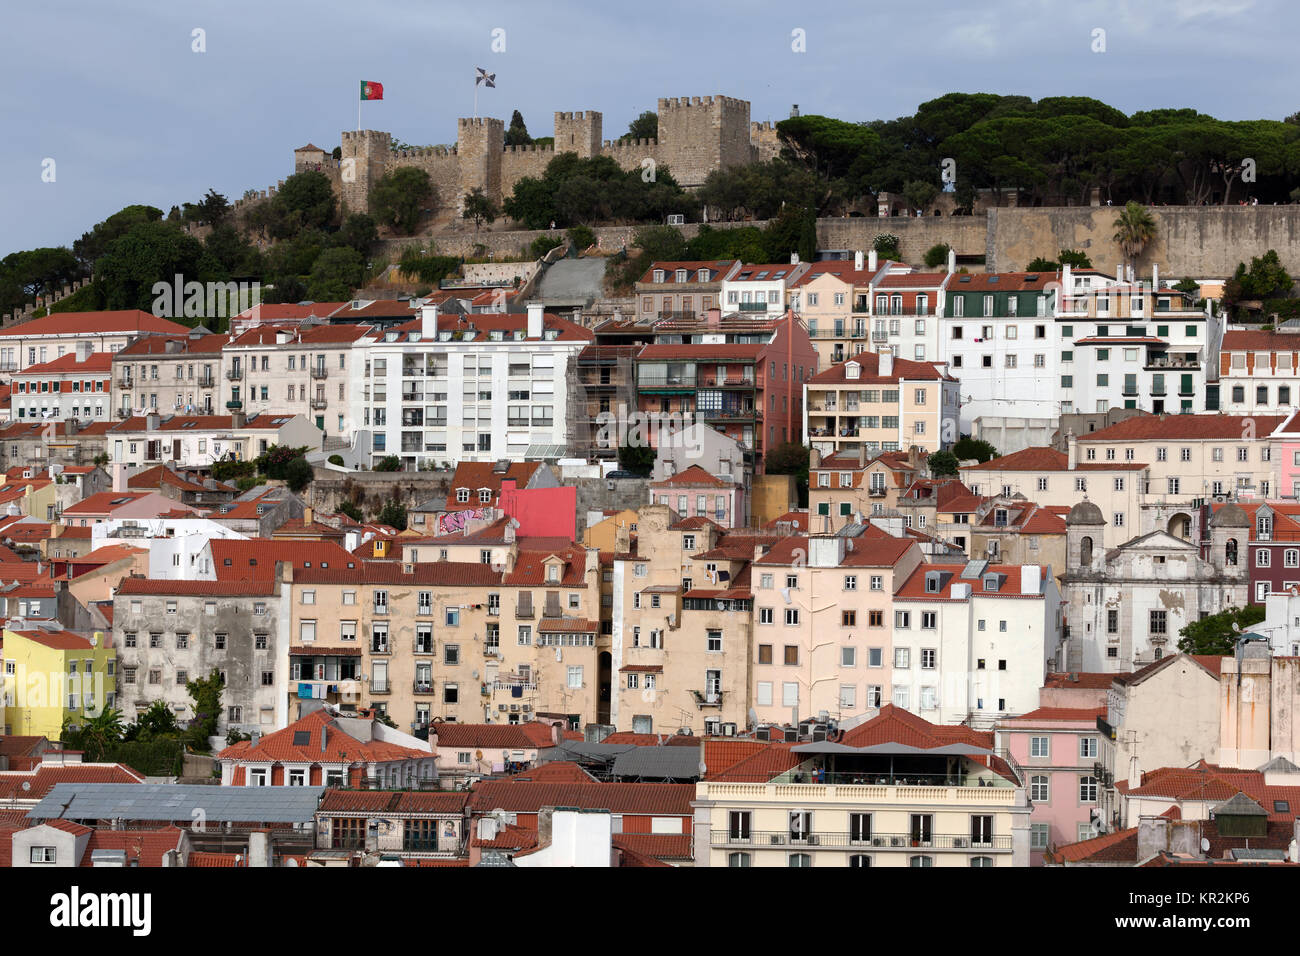 View of Lisbon, Portugal from the Santa Justa Lift, towards the Saint George Castle. - Stock Image